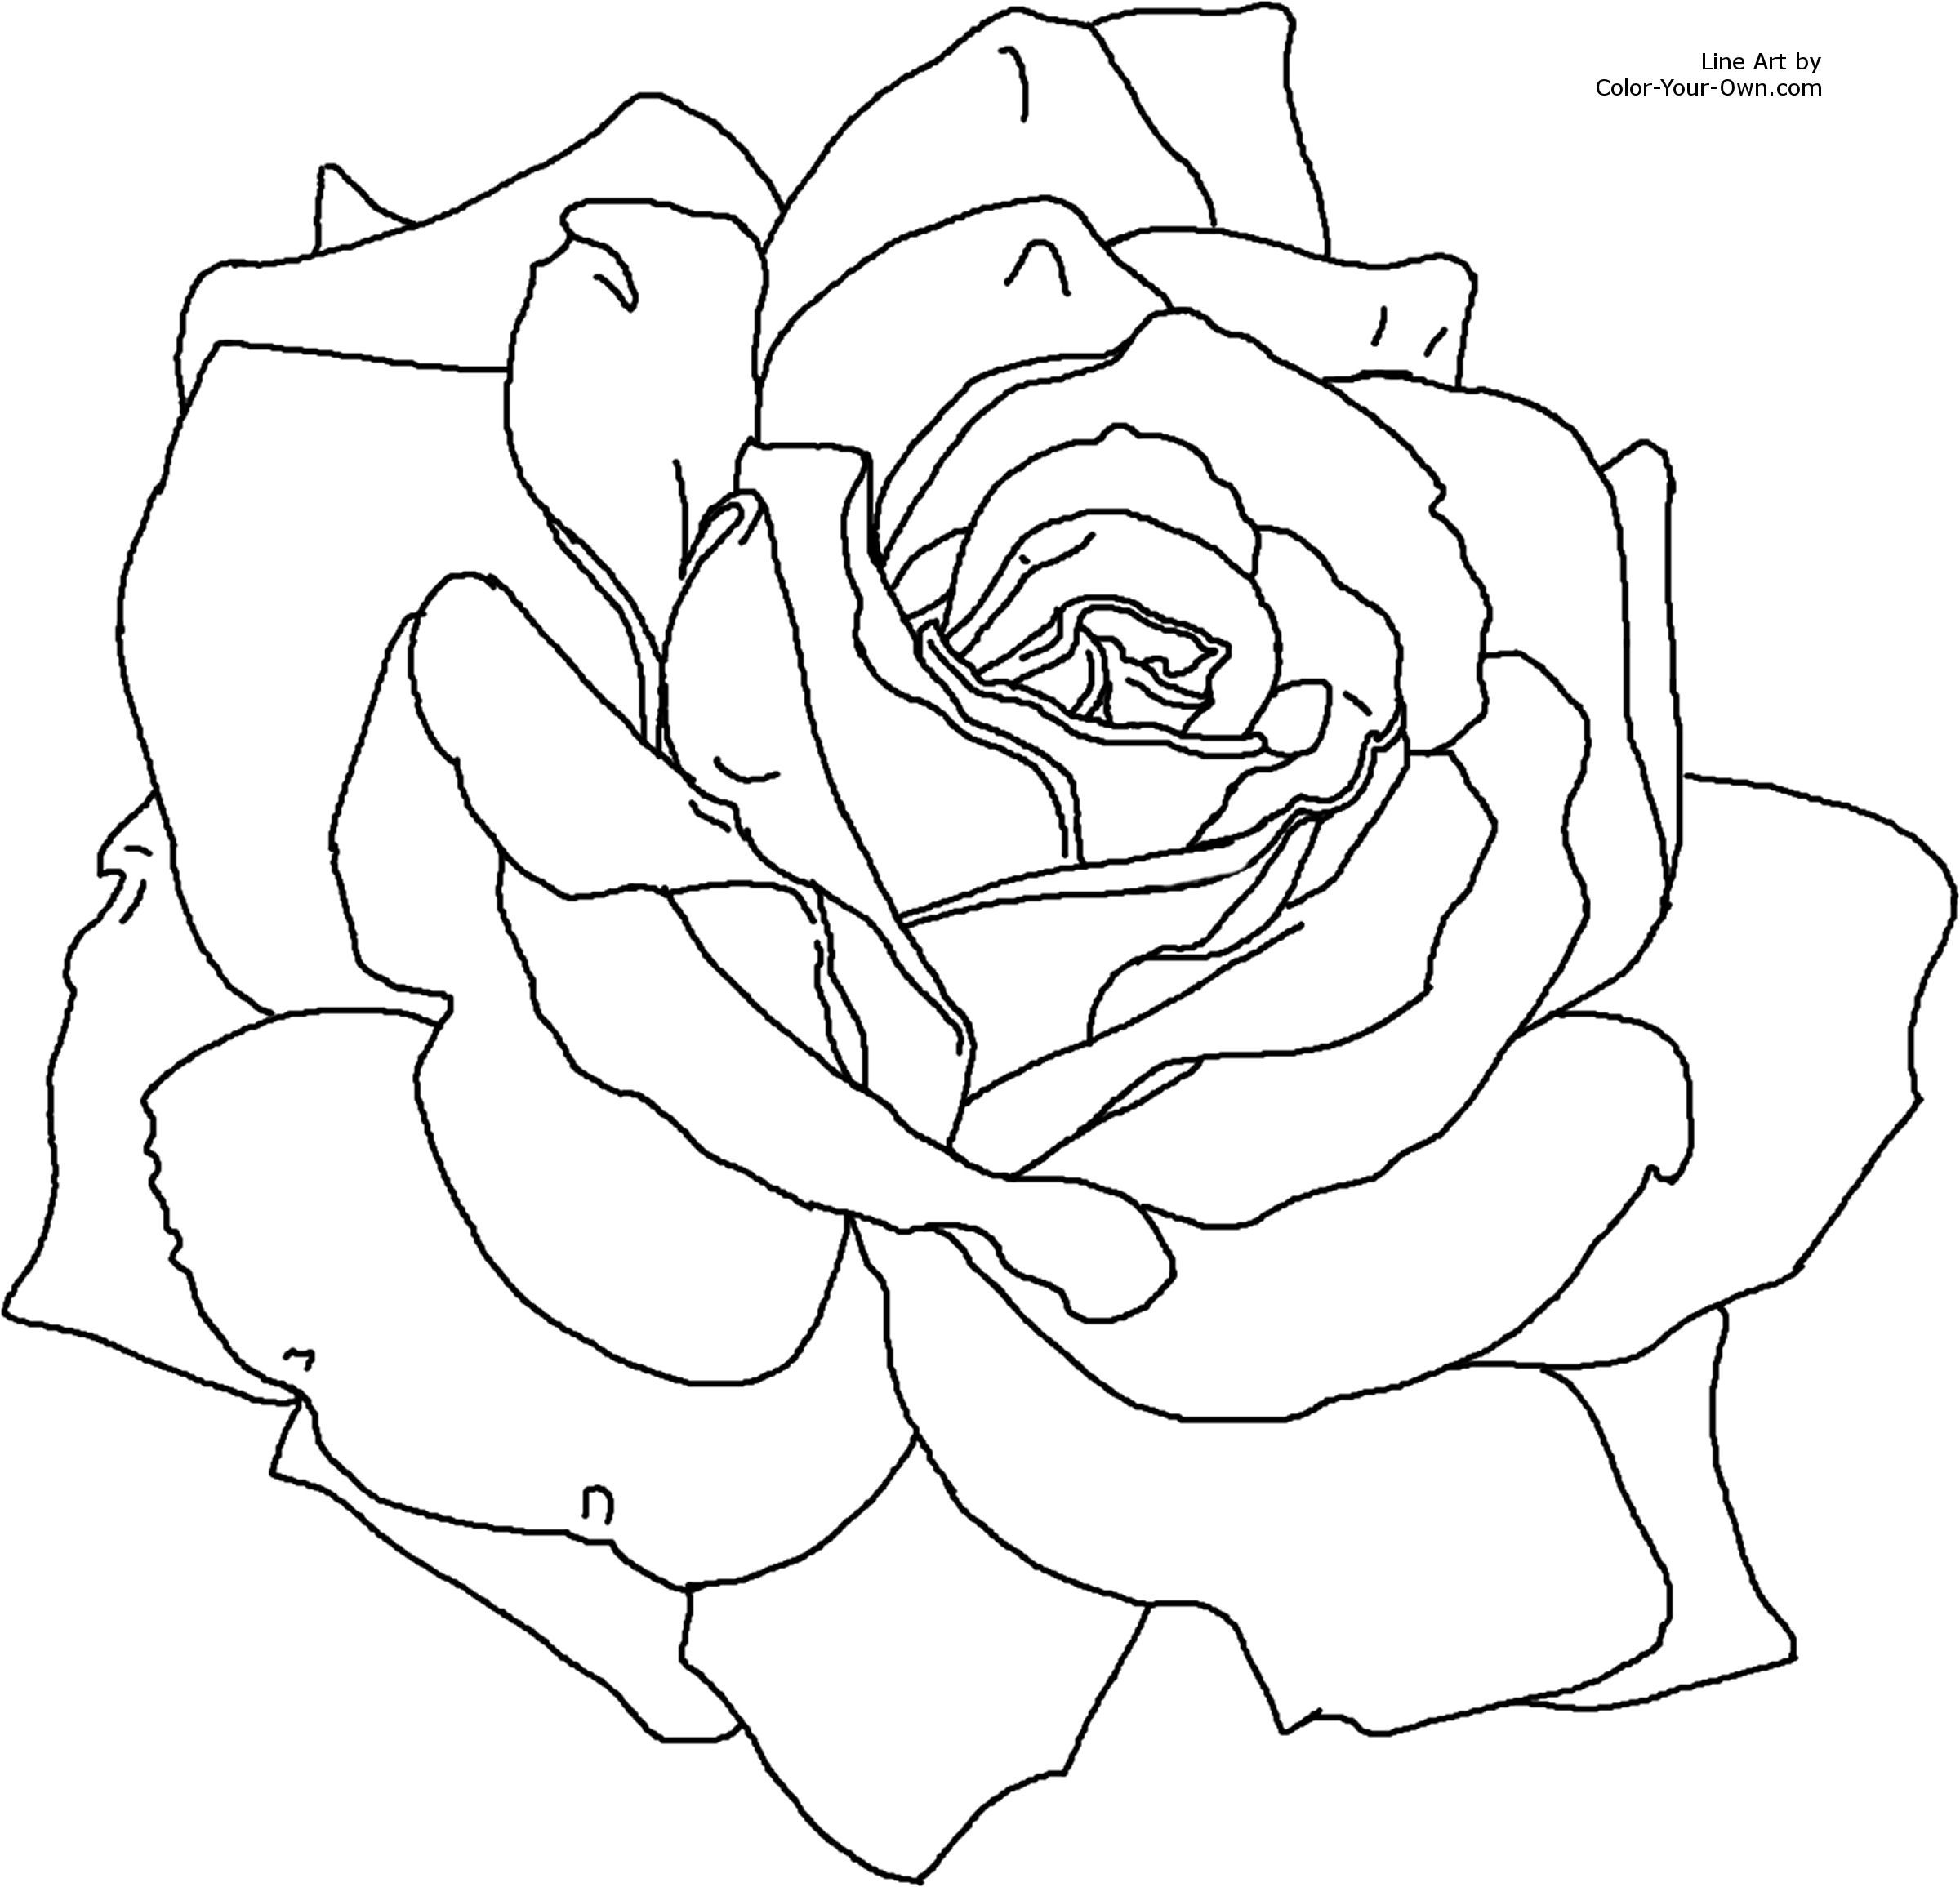 flower Page Printable Coloring Sheets For the 8.5 x 11